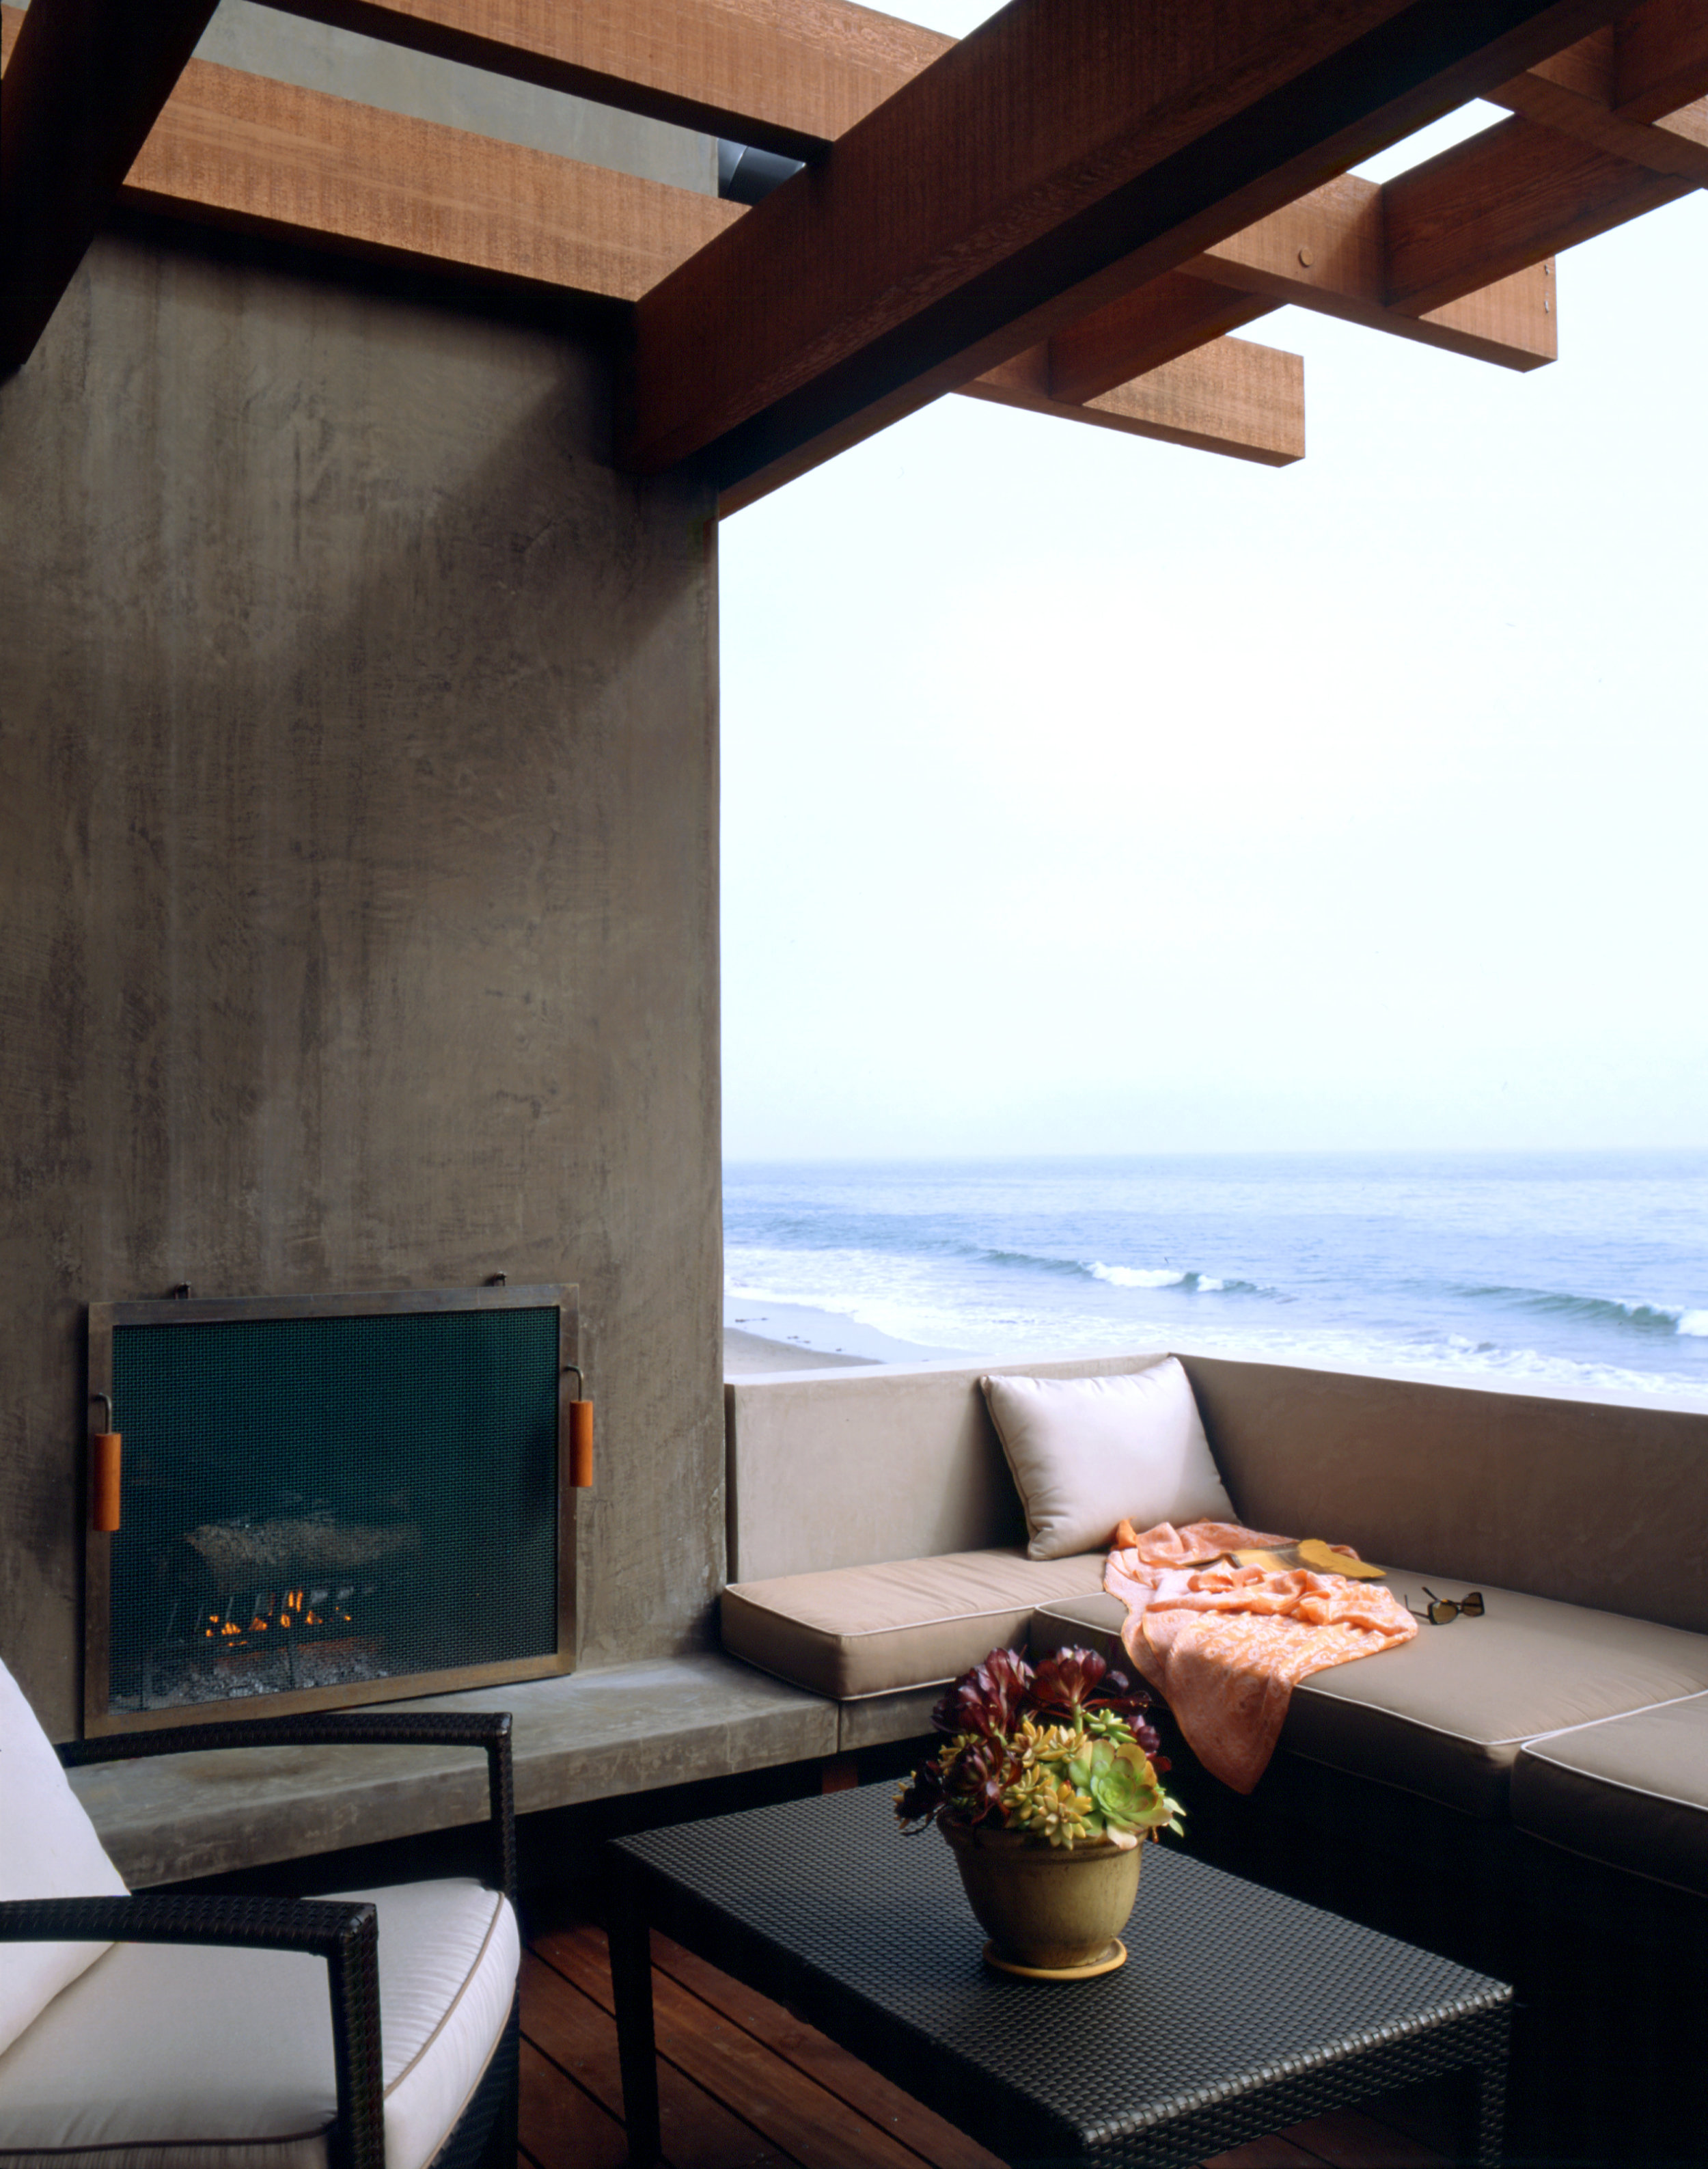 S.E.A.-Studio-Environmental-Architecture-David-Hertz-FAIA-Hall-Dreyfus-Beach-House-Montecito-California-sustainable-regenerative-restorative-design-residential-contemporary-modern-ocean-view-concrete-wood-remodel-SoCal-waterfront-scenic-studioea-10.jpg